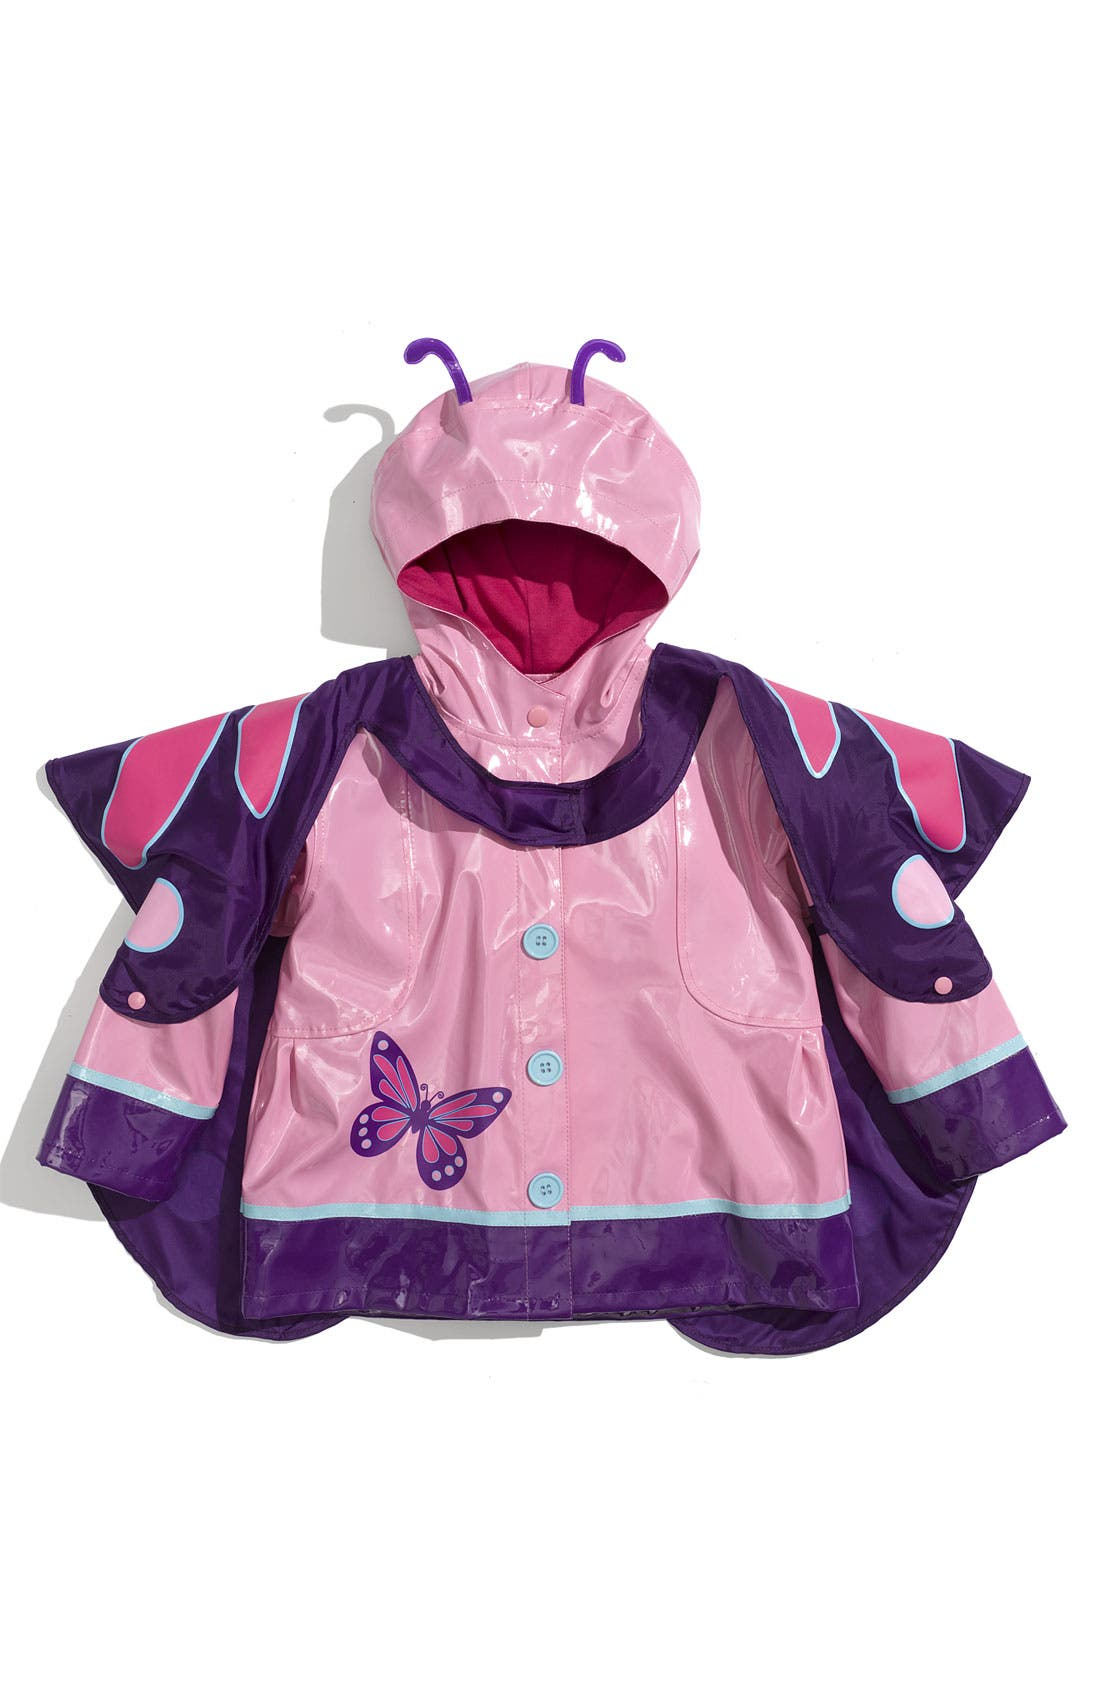 Main Image - Western Chief 'Wings' Raincoat (Toddler & Little Girls)